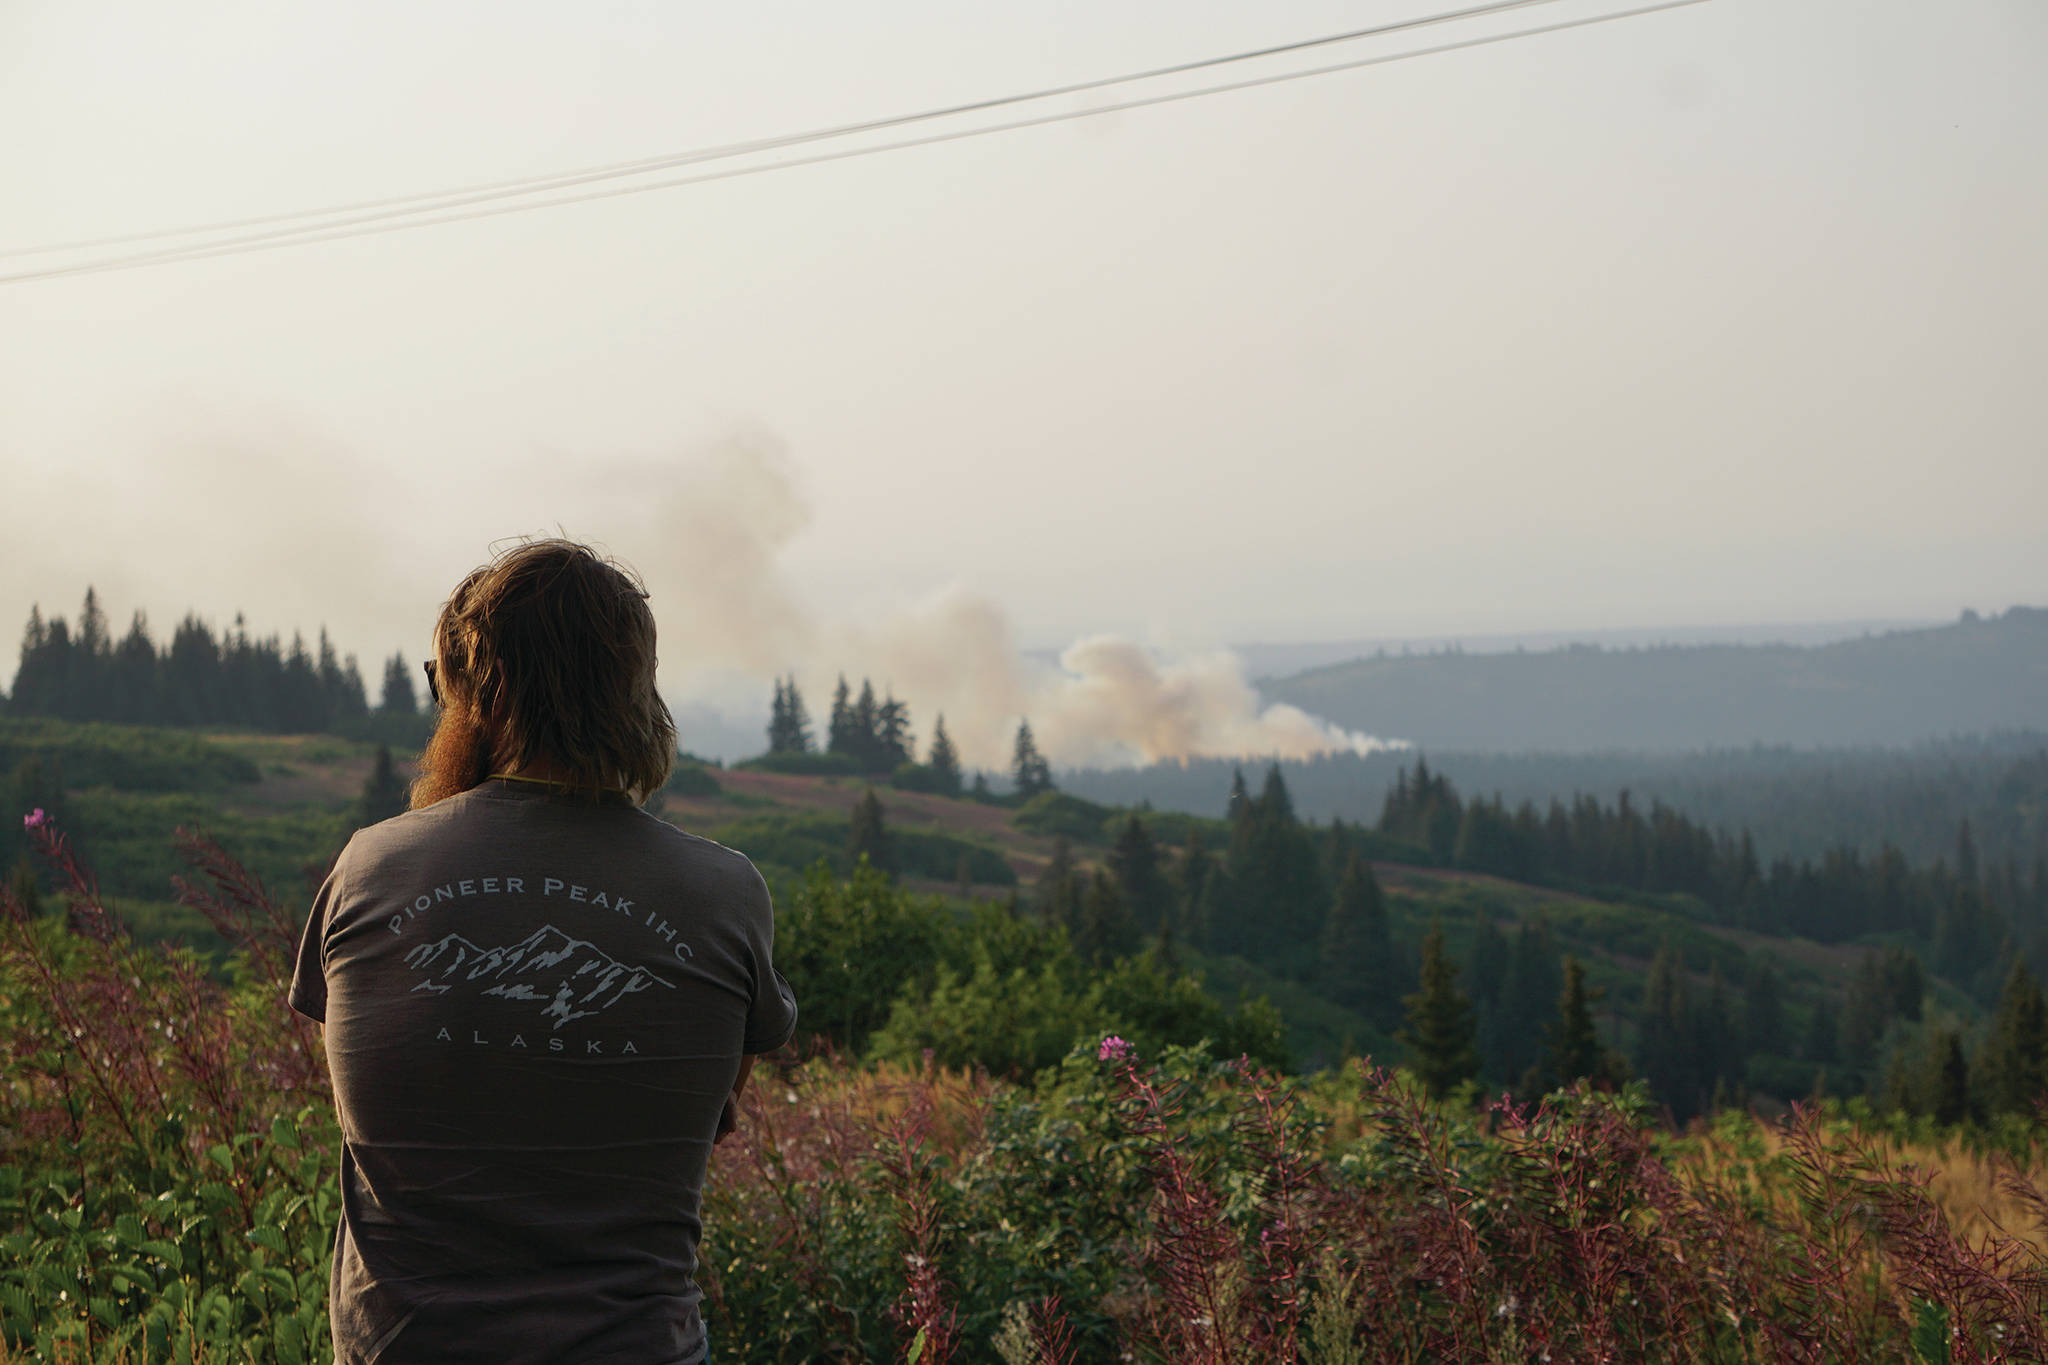 Diamond Ridge resident Parick Buongiorne watches the North Fork fire as it burns near the south end of the North Fork Road on Sunday evening, Aug. 18, 2019, near Homer, Alaska, as seen from Diamond Ridge Road. Buongiorne had previously worked as a wildlife firefighter with the Pioneer Peak crew. (Photo by Michael Armstrong/Homer News)